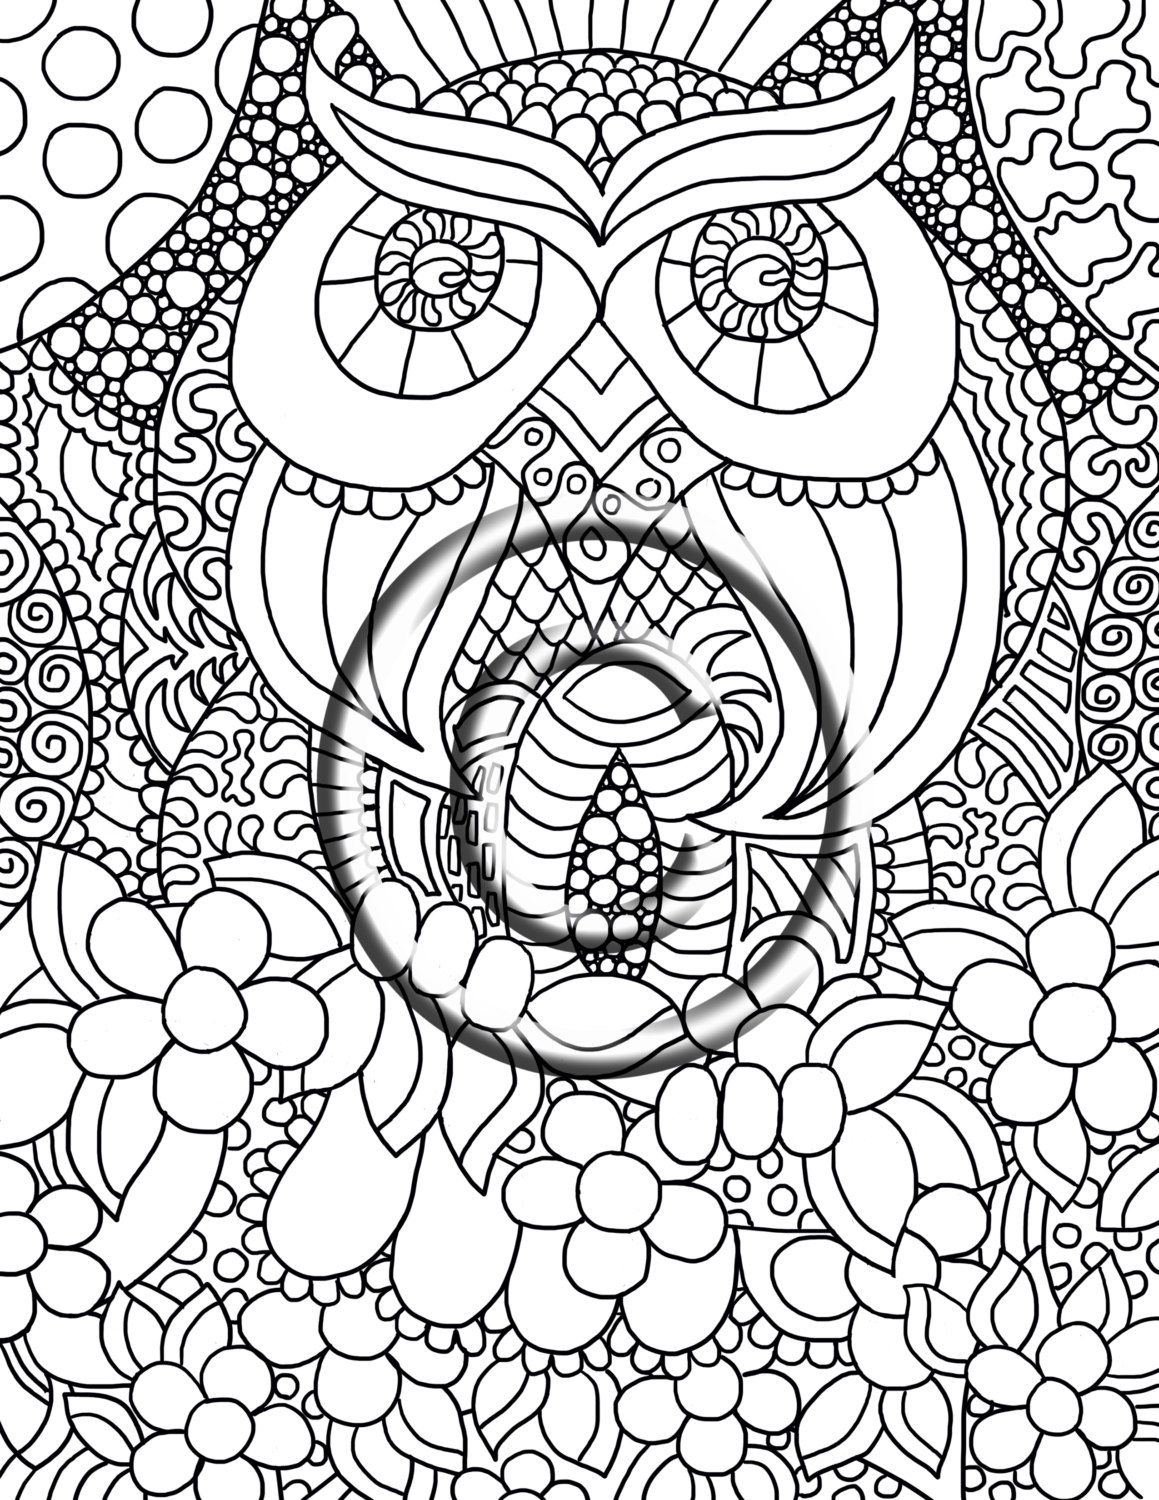 Digital Download Coloring Page Hand Drawn Zentangle Inspired \